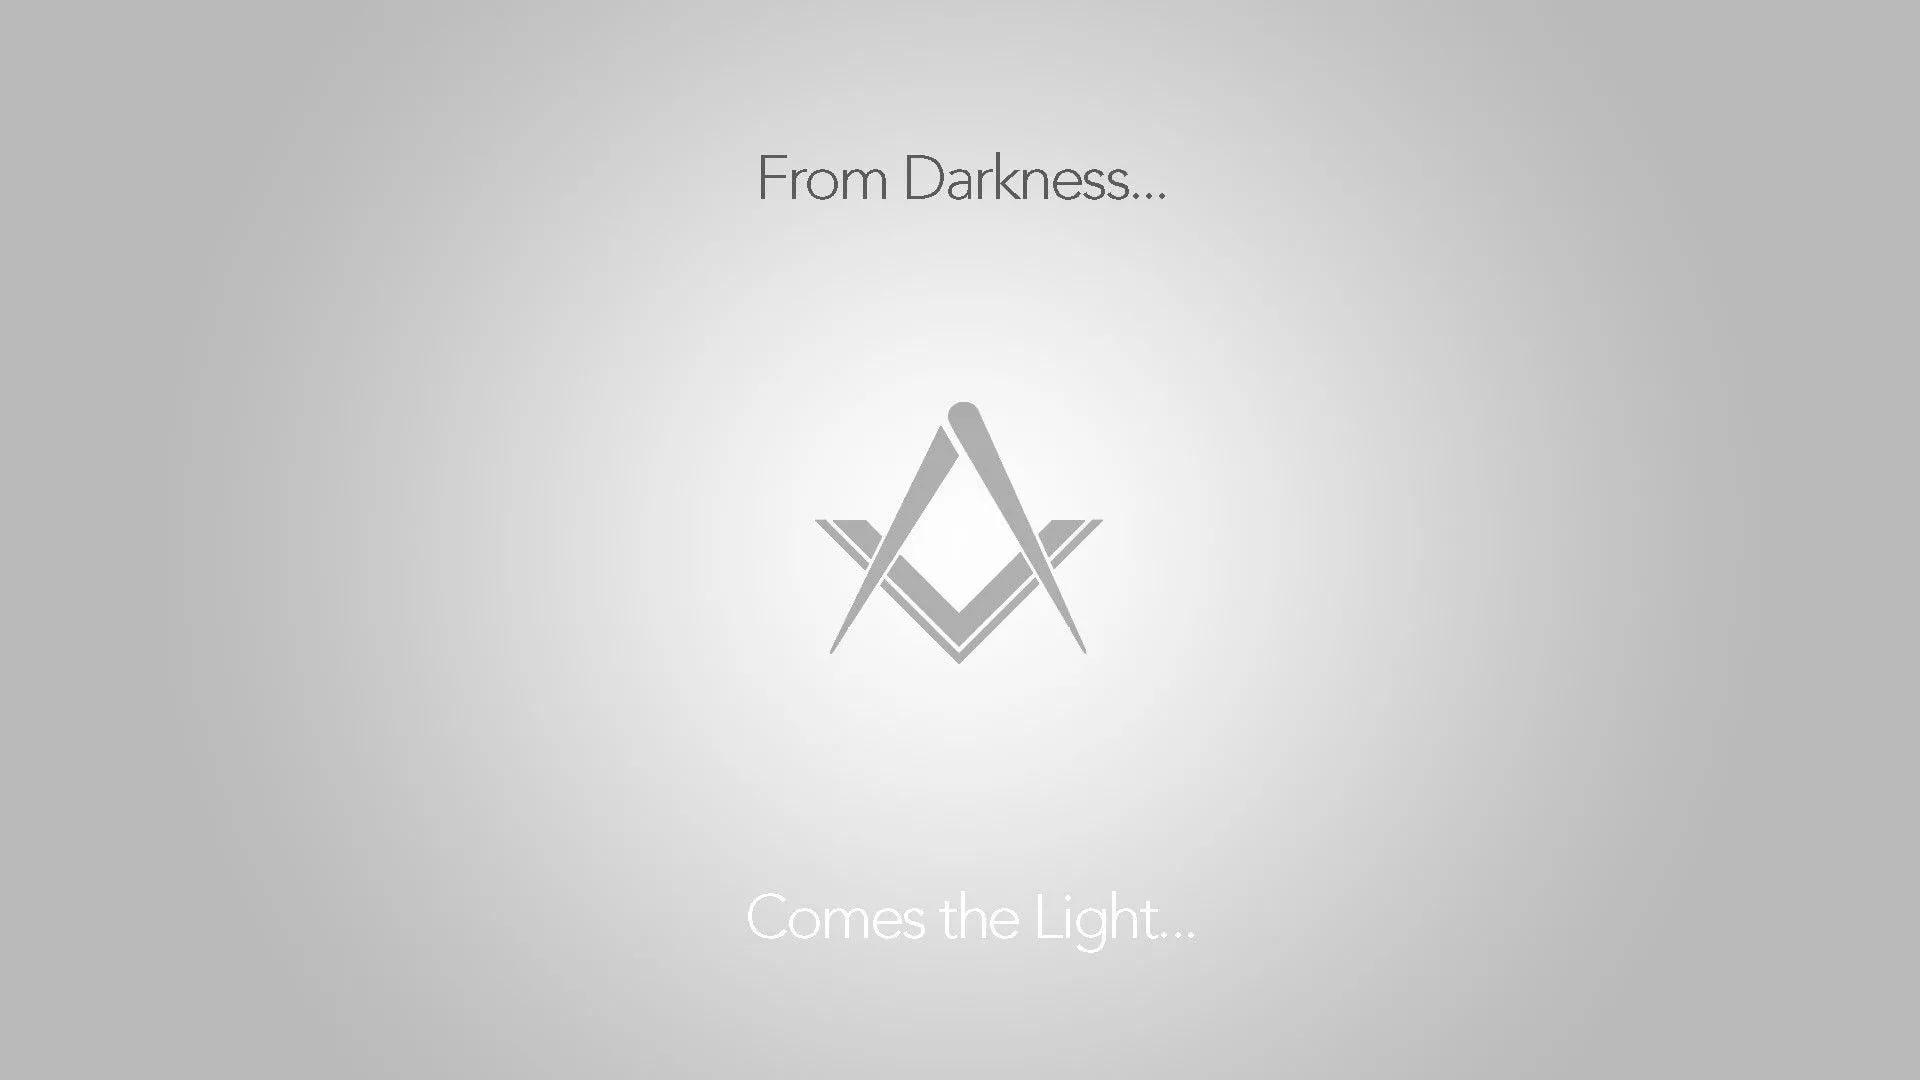 Freemason wallpaper image